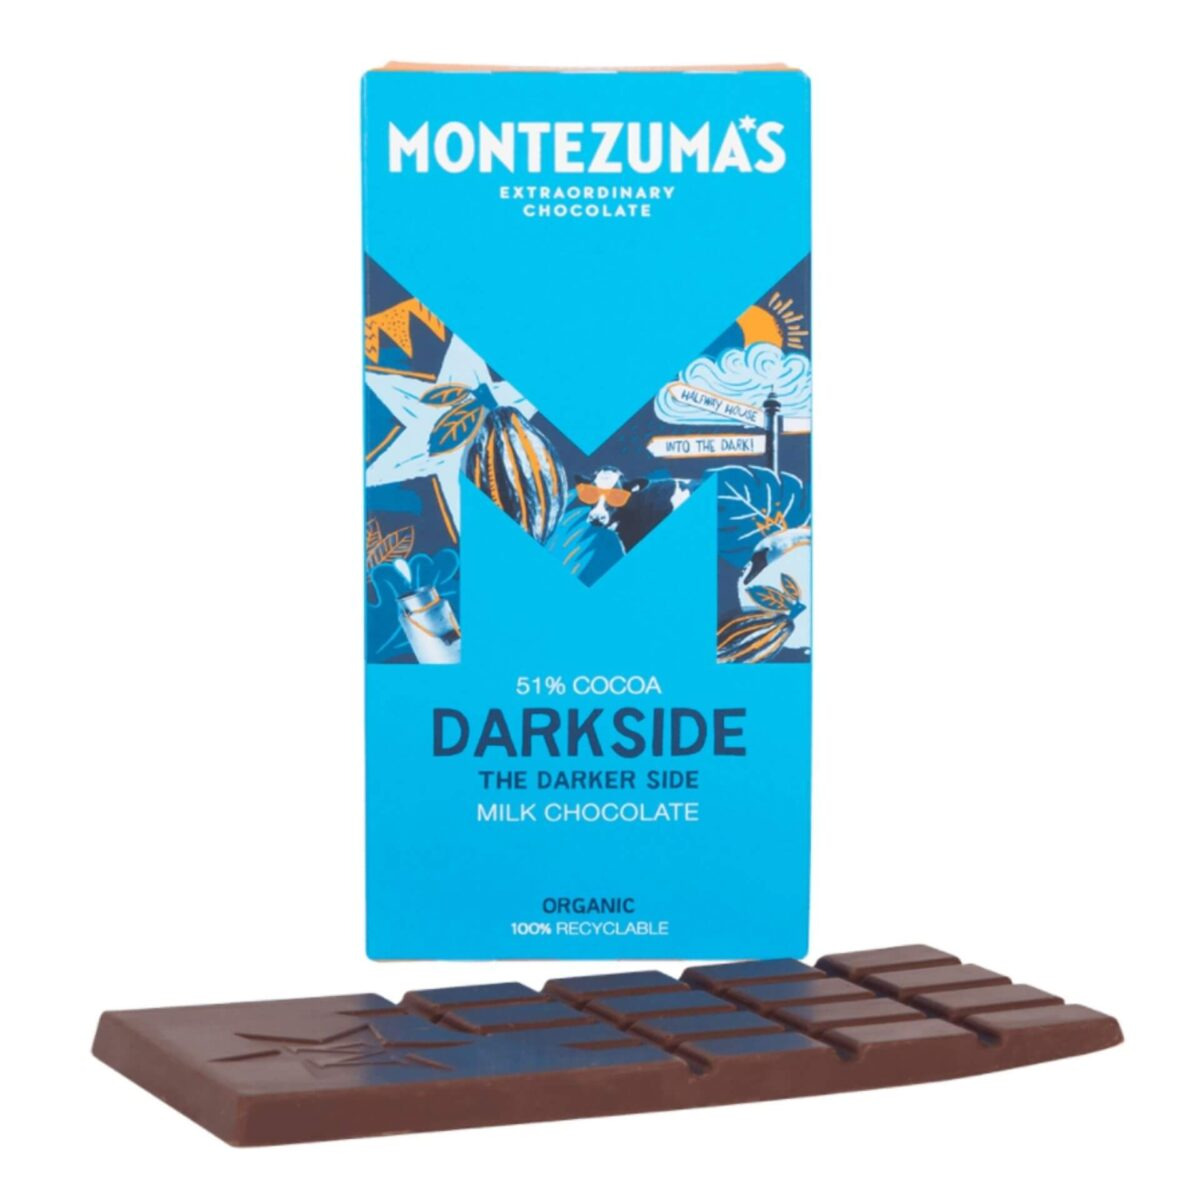 montezumas-extraordinary-darkside-chocolate-51-cocoa-90-g-2